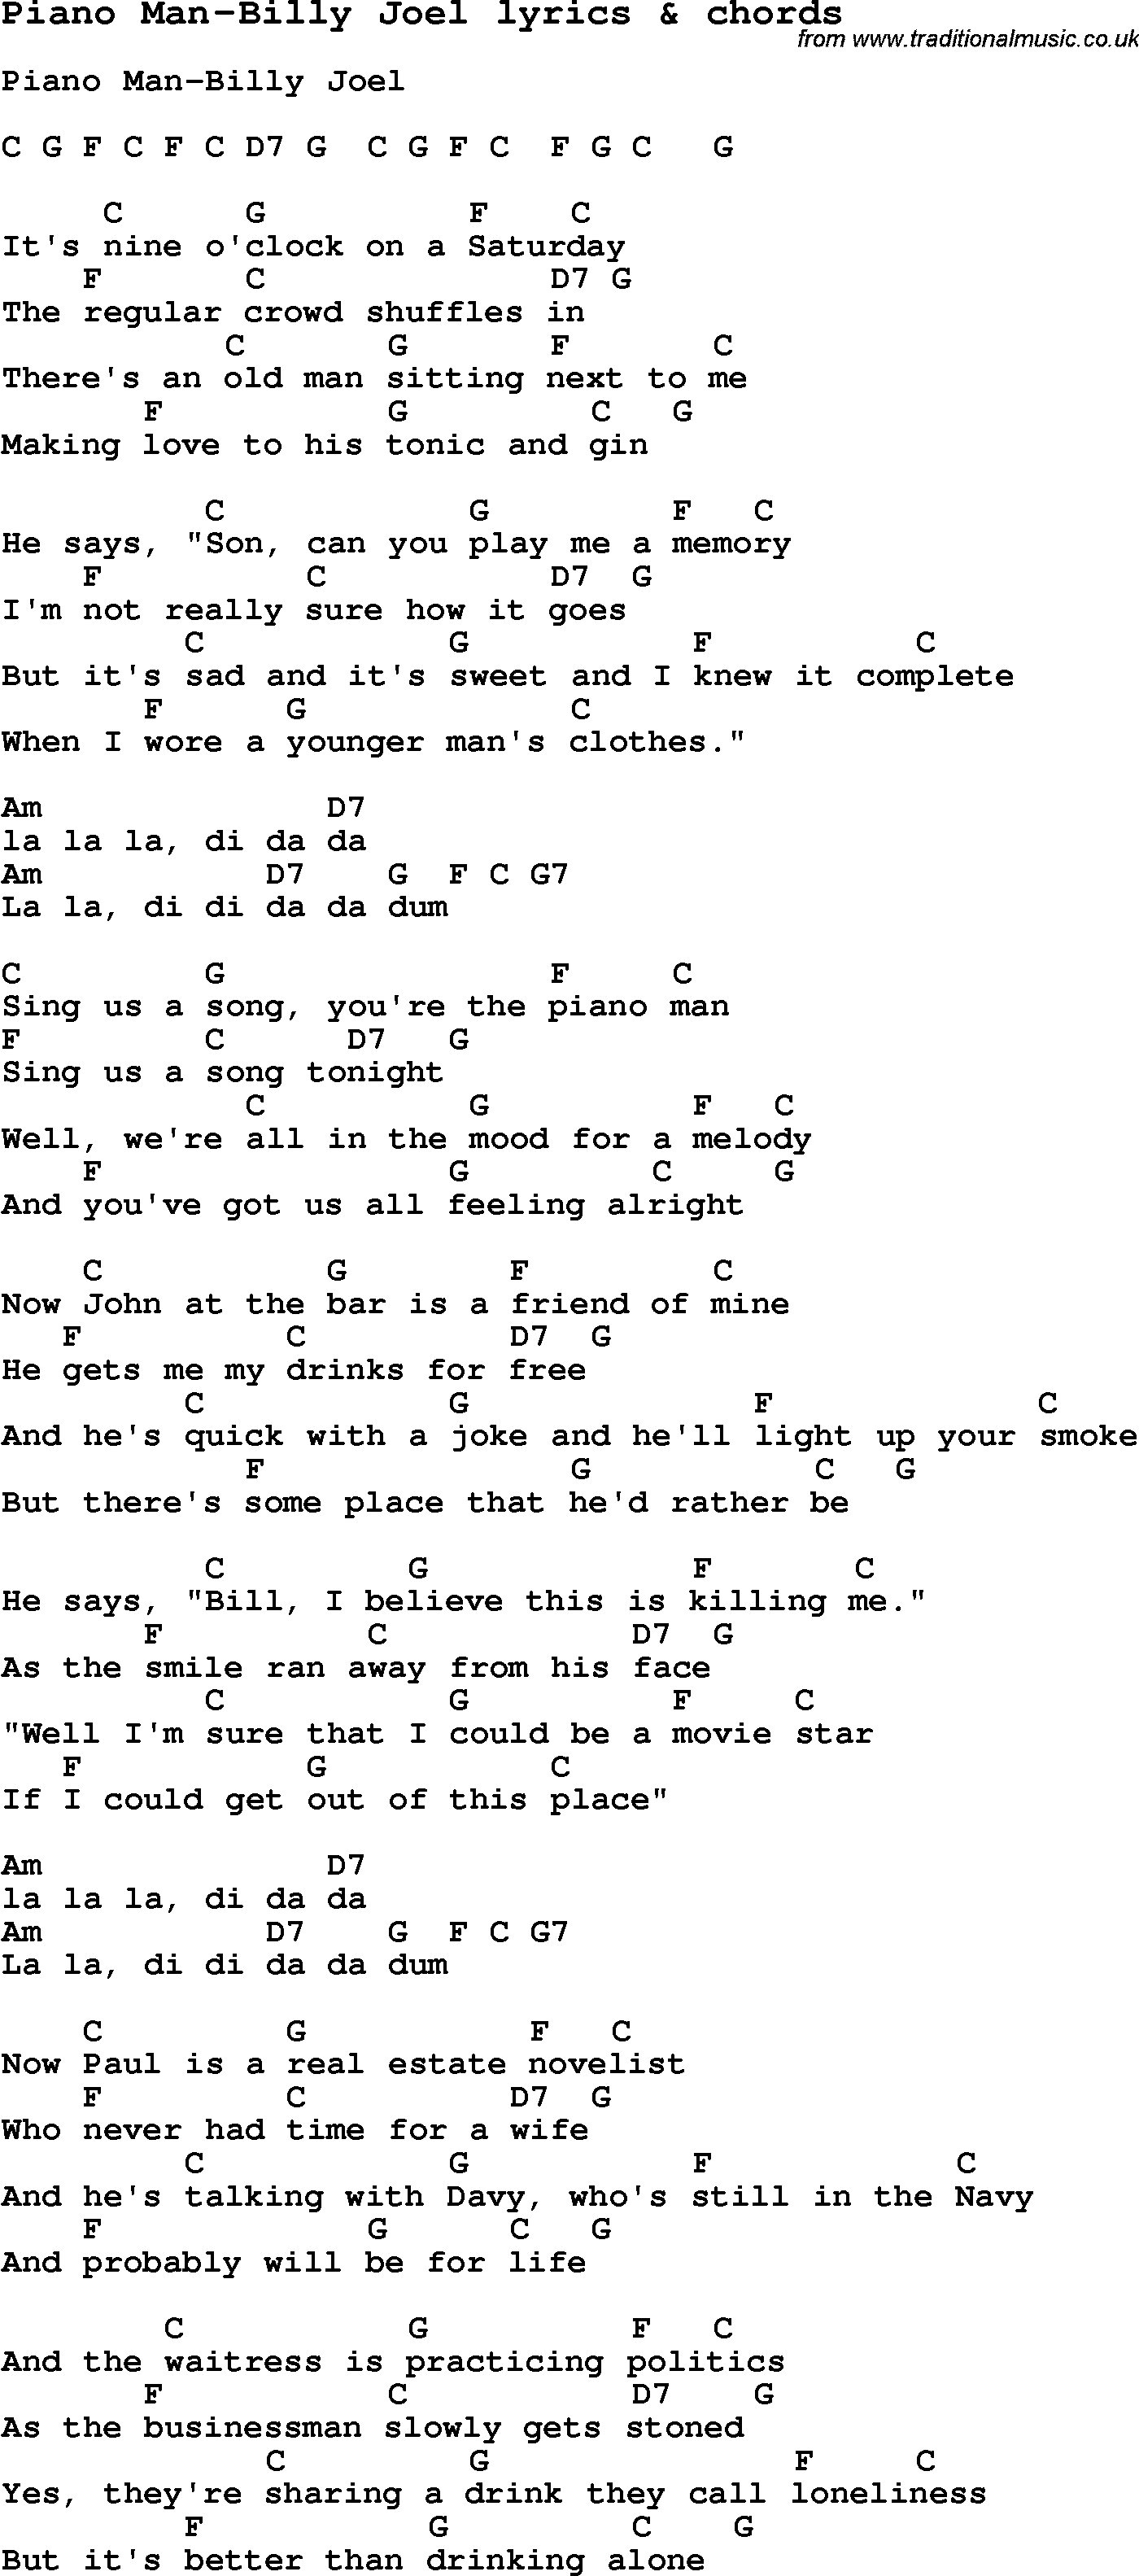 Love song lyrics for piano man billy joel with chords for ukulele love song lyrics for piano man billy joel with chords for ukulele guitar hexwebz Image collections